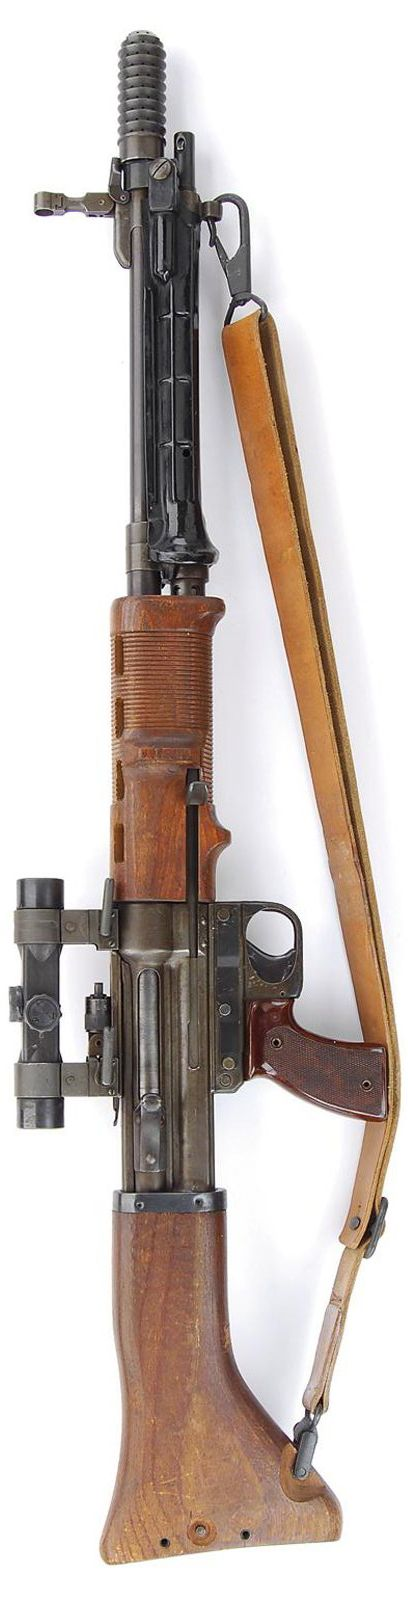 FG42 Loading that magazine is a pain! Get your Magazine speedloader today! http://www.amazon.com/shops/raeind